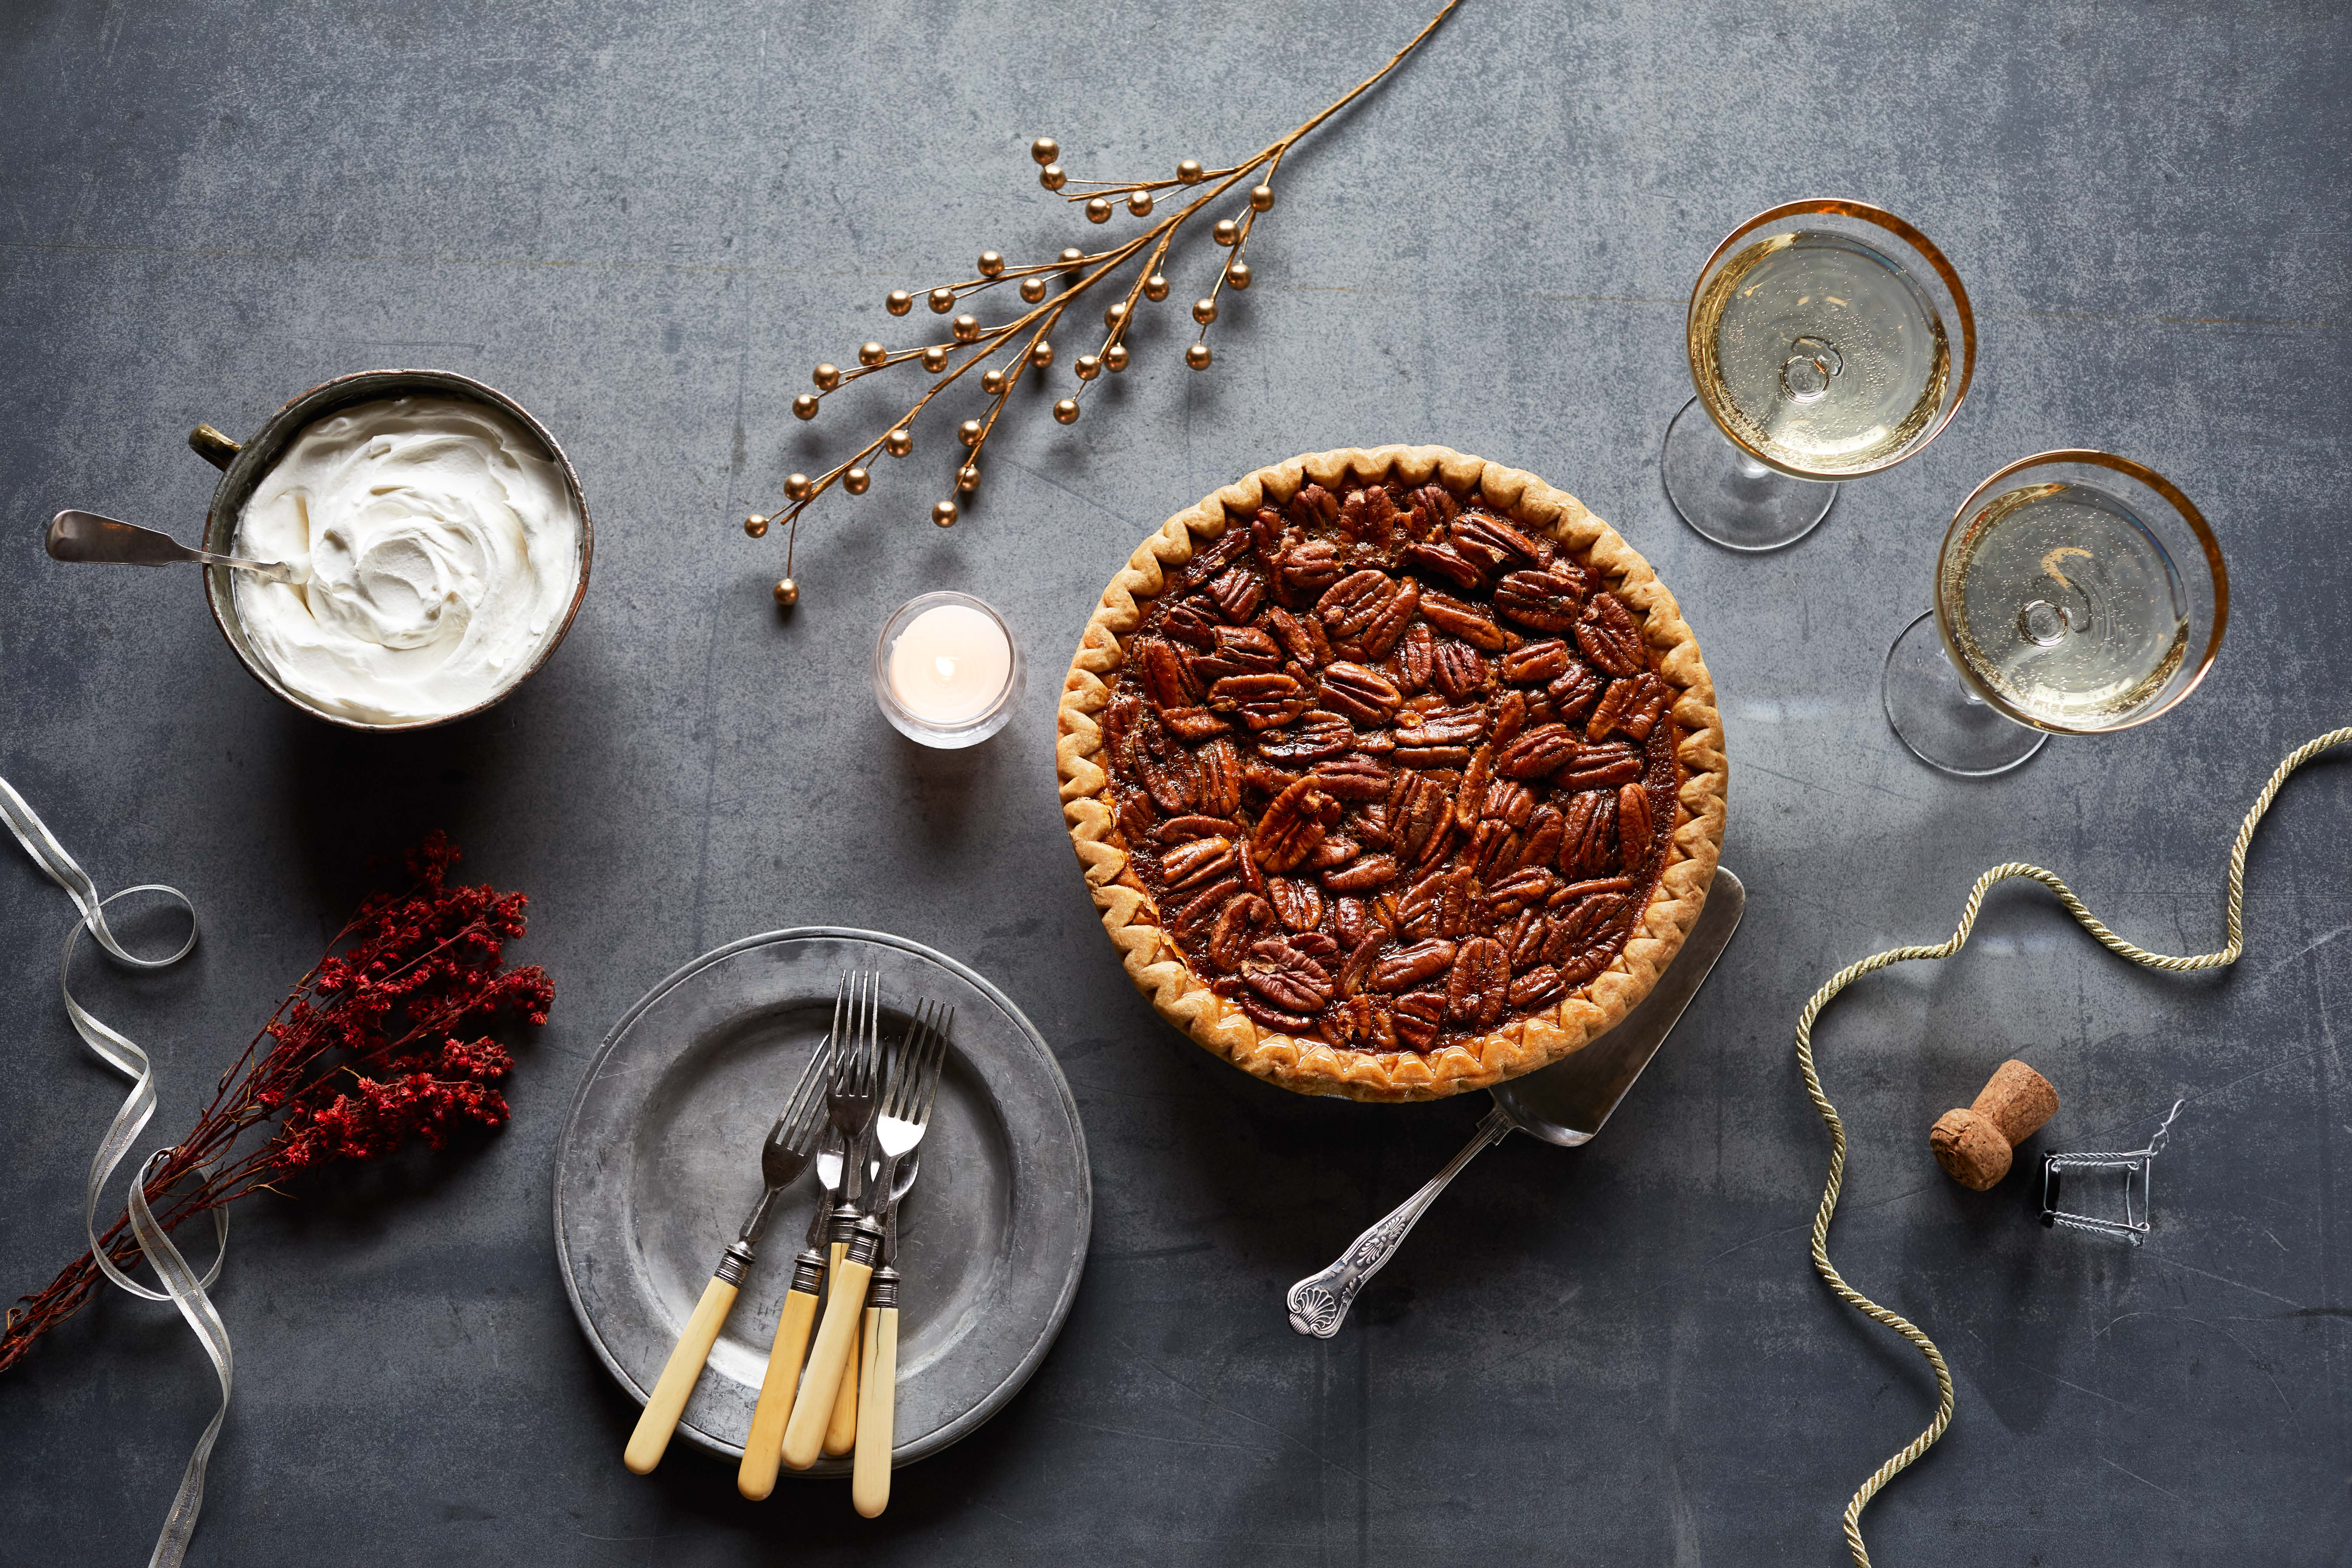 Table setting of whole pecan pies and plated pie slices